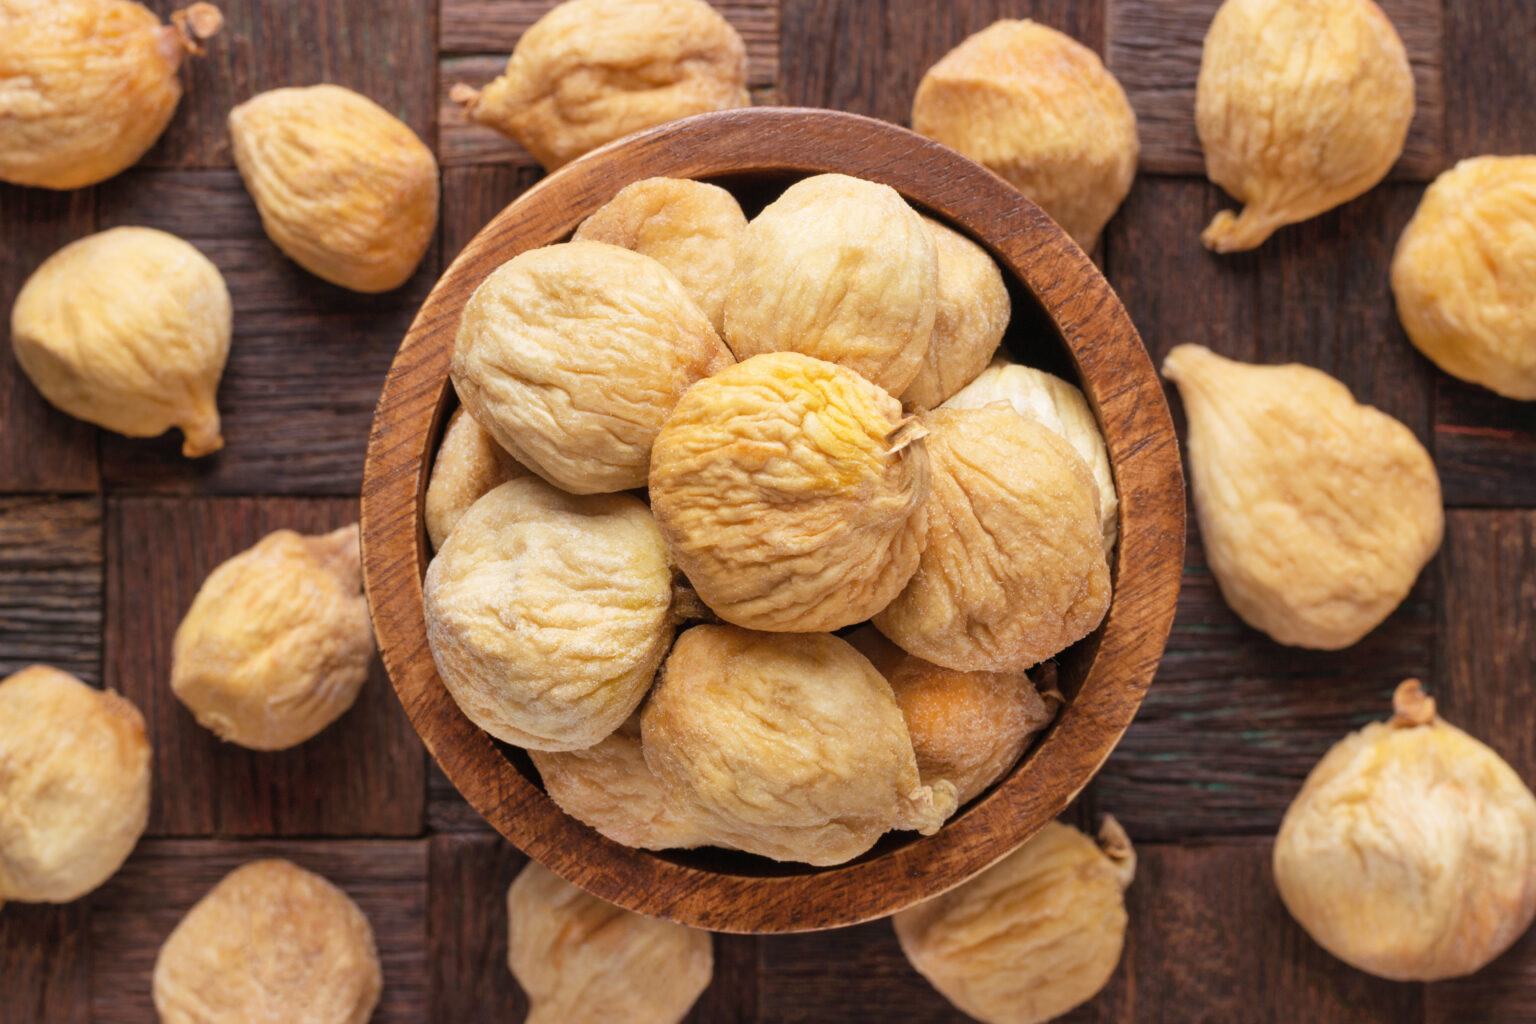 dried figs in bowl on wooden table background.